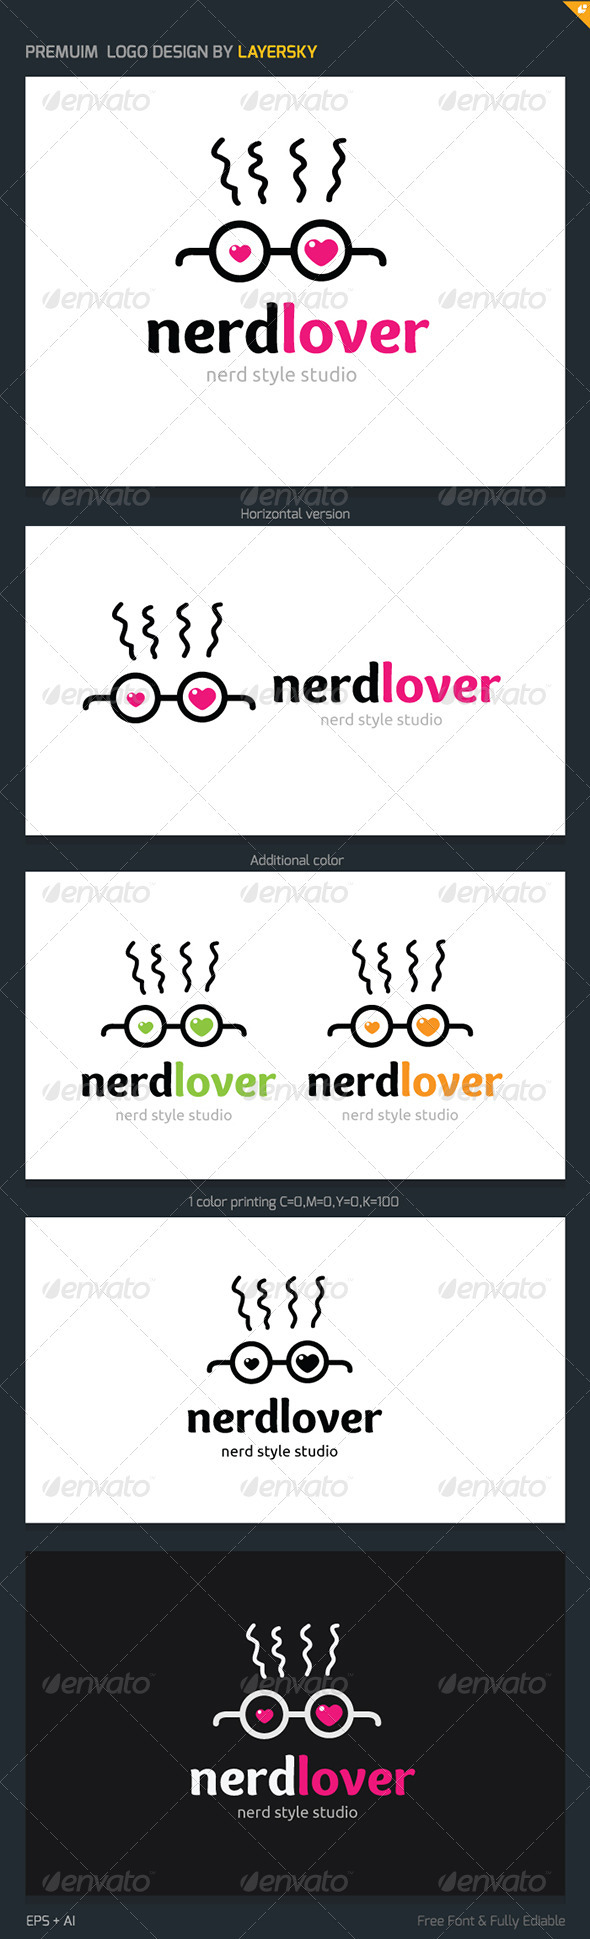 GraphicRiver Nerd Lover Logo 3802198